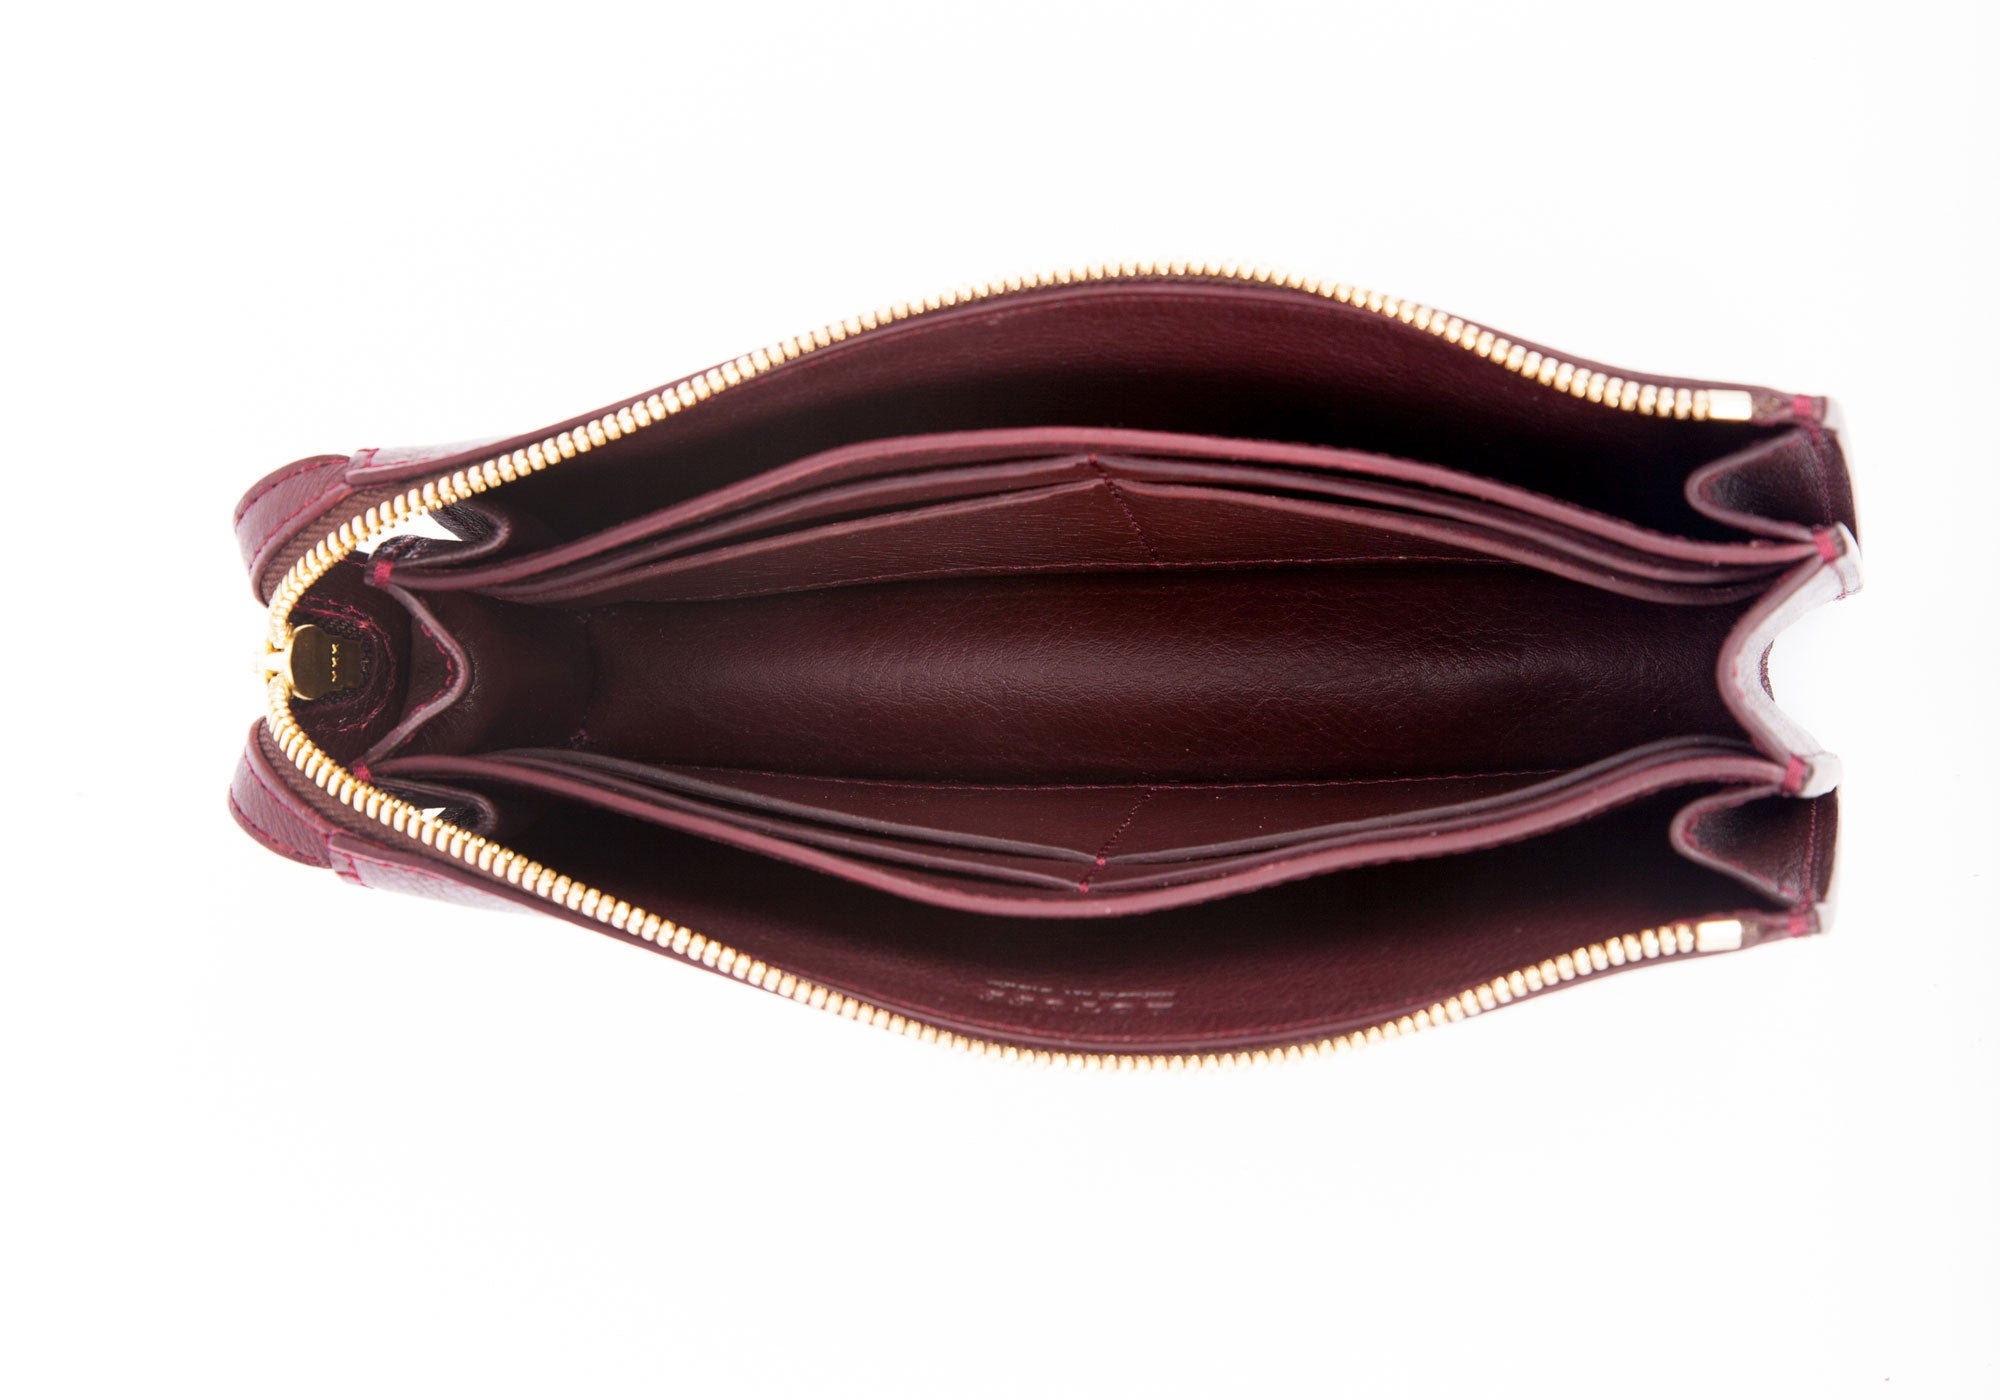 Women's Leather Wallet Cordovan